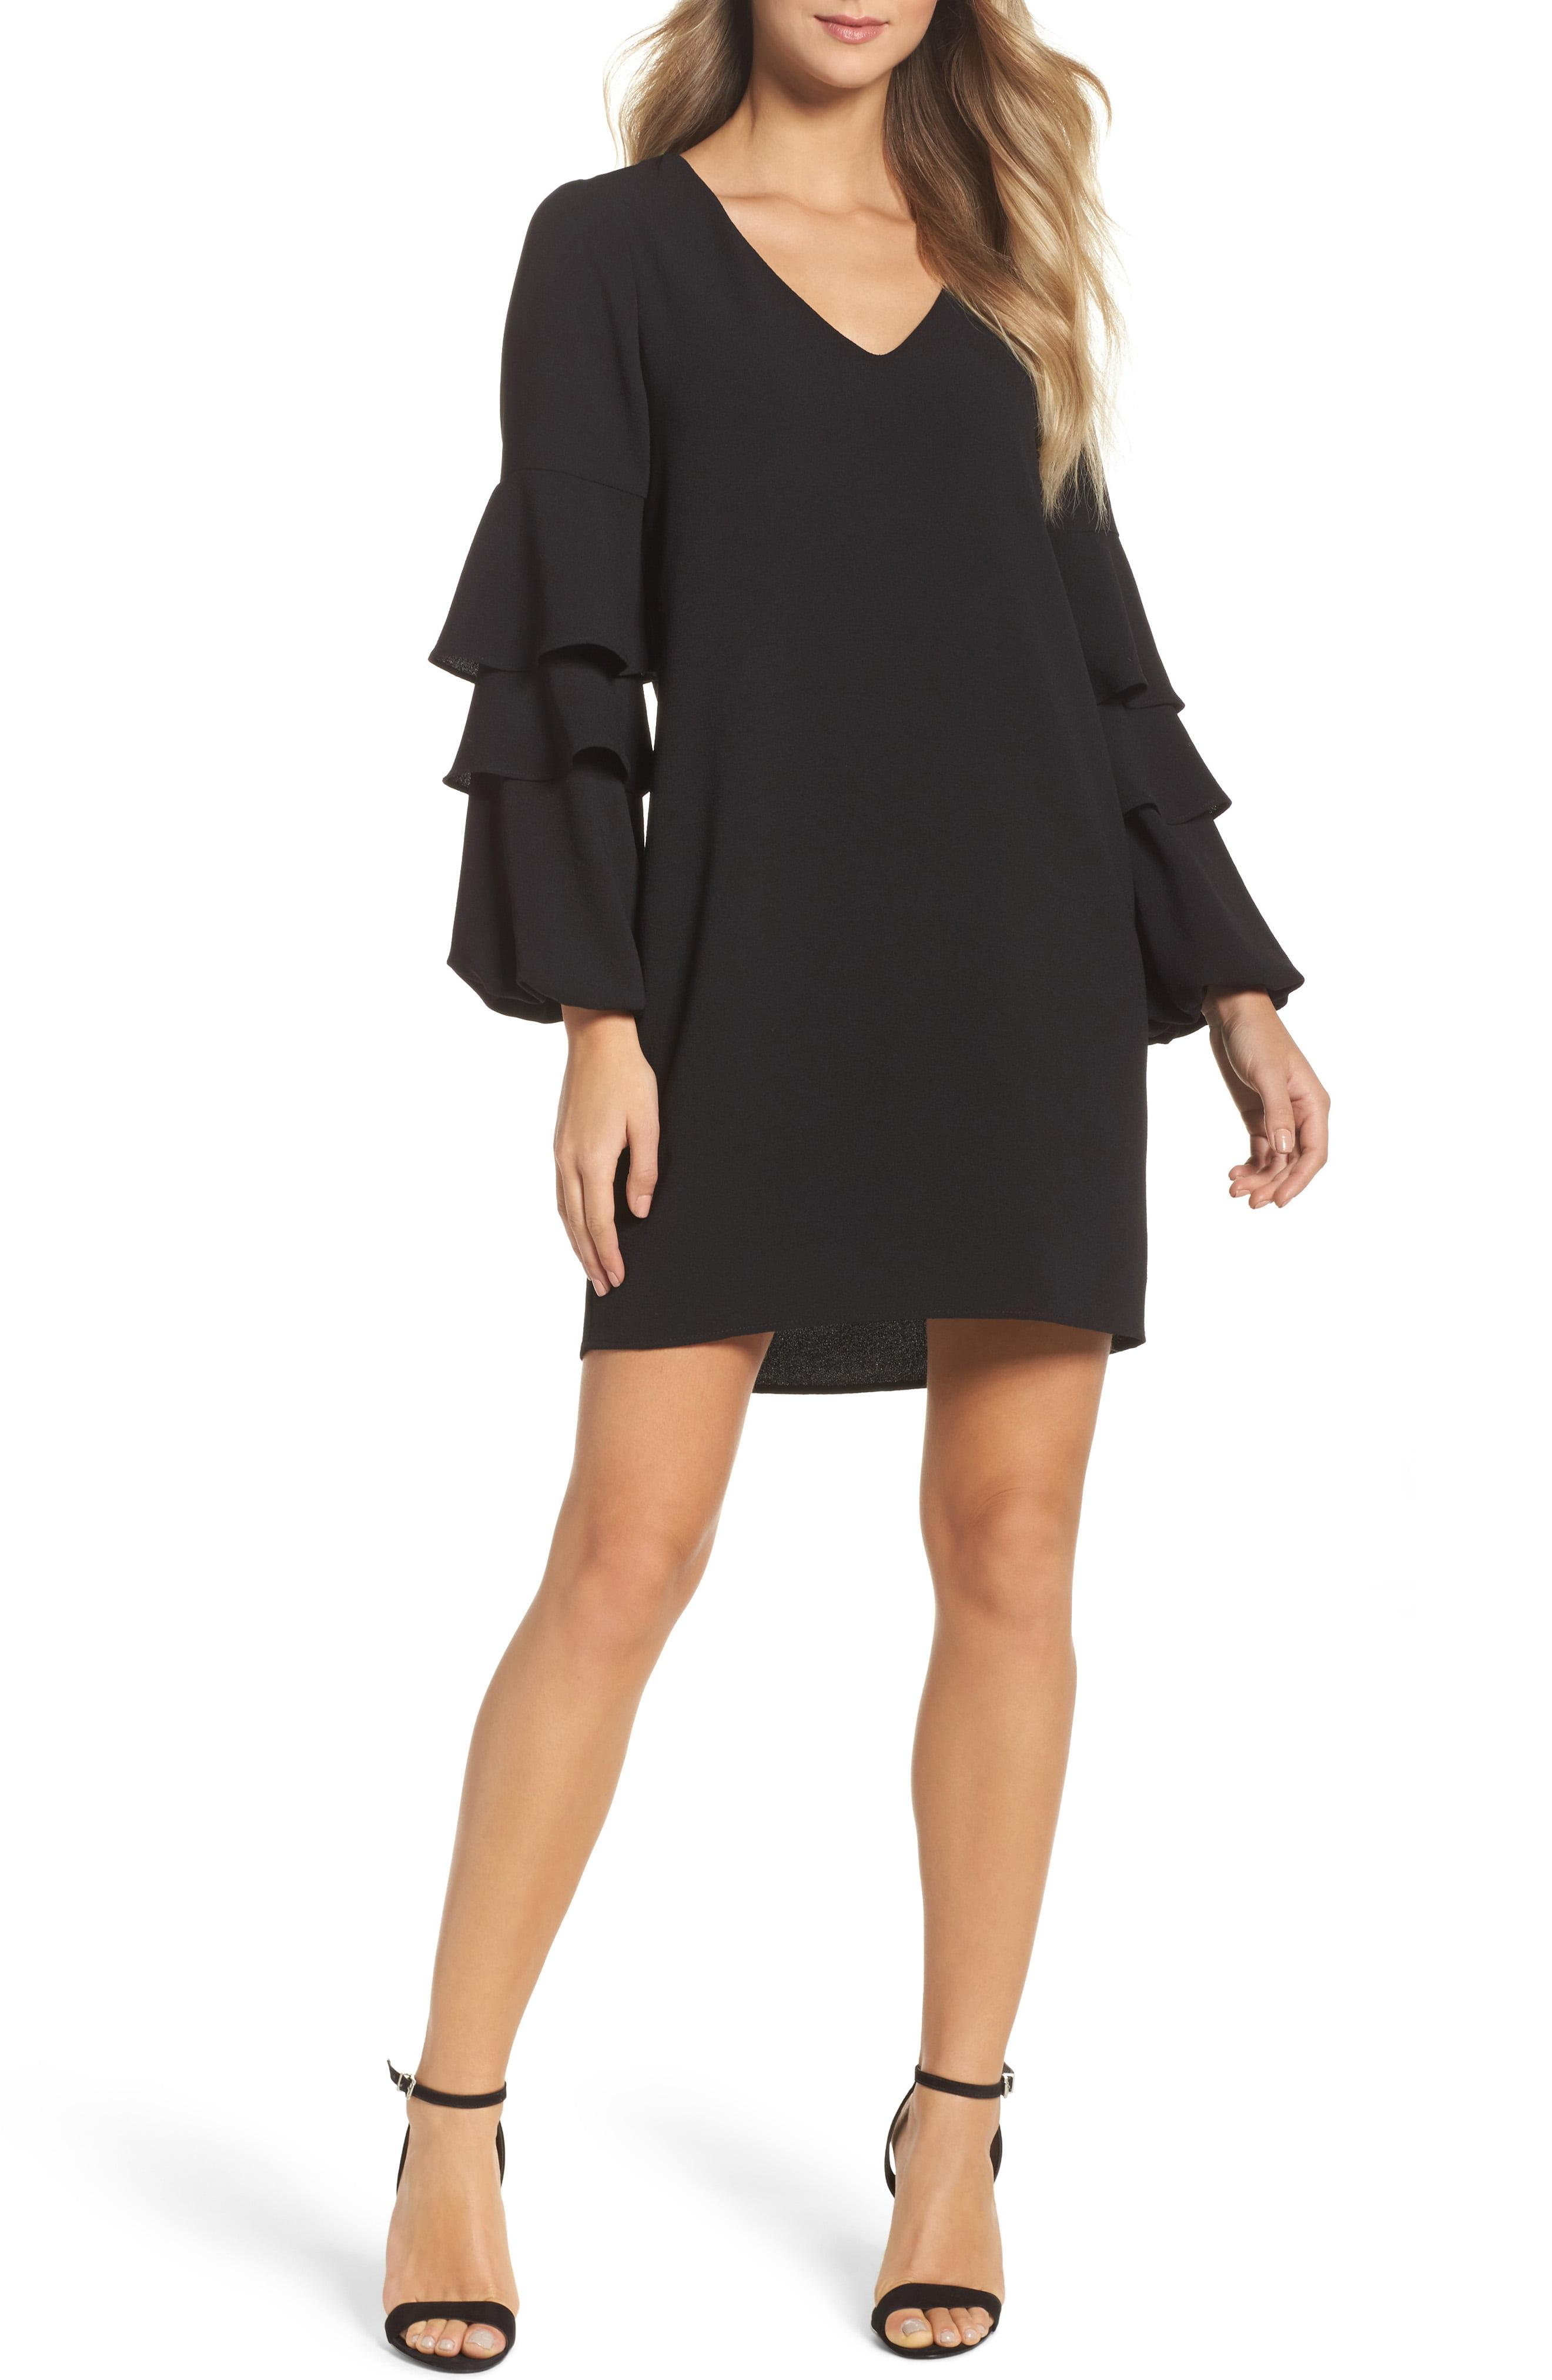 c84a7f1a6a51 Lyst - Charles Henry Tiered Ruffle Sleeve Shift Dress in Black ...